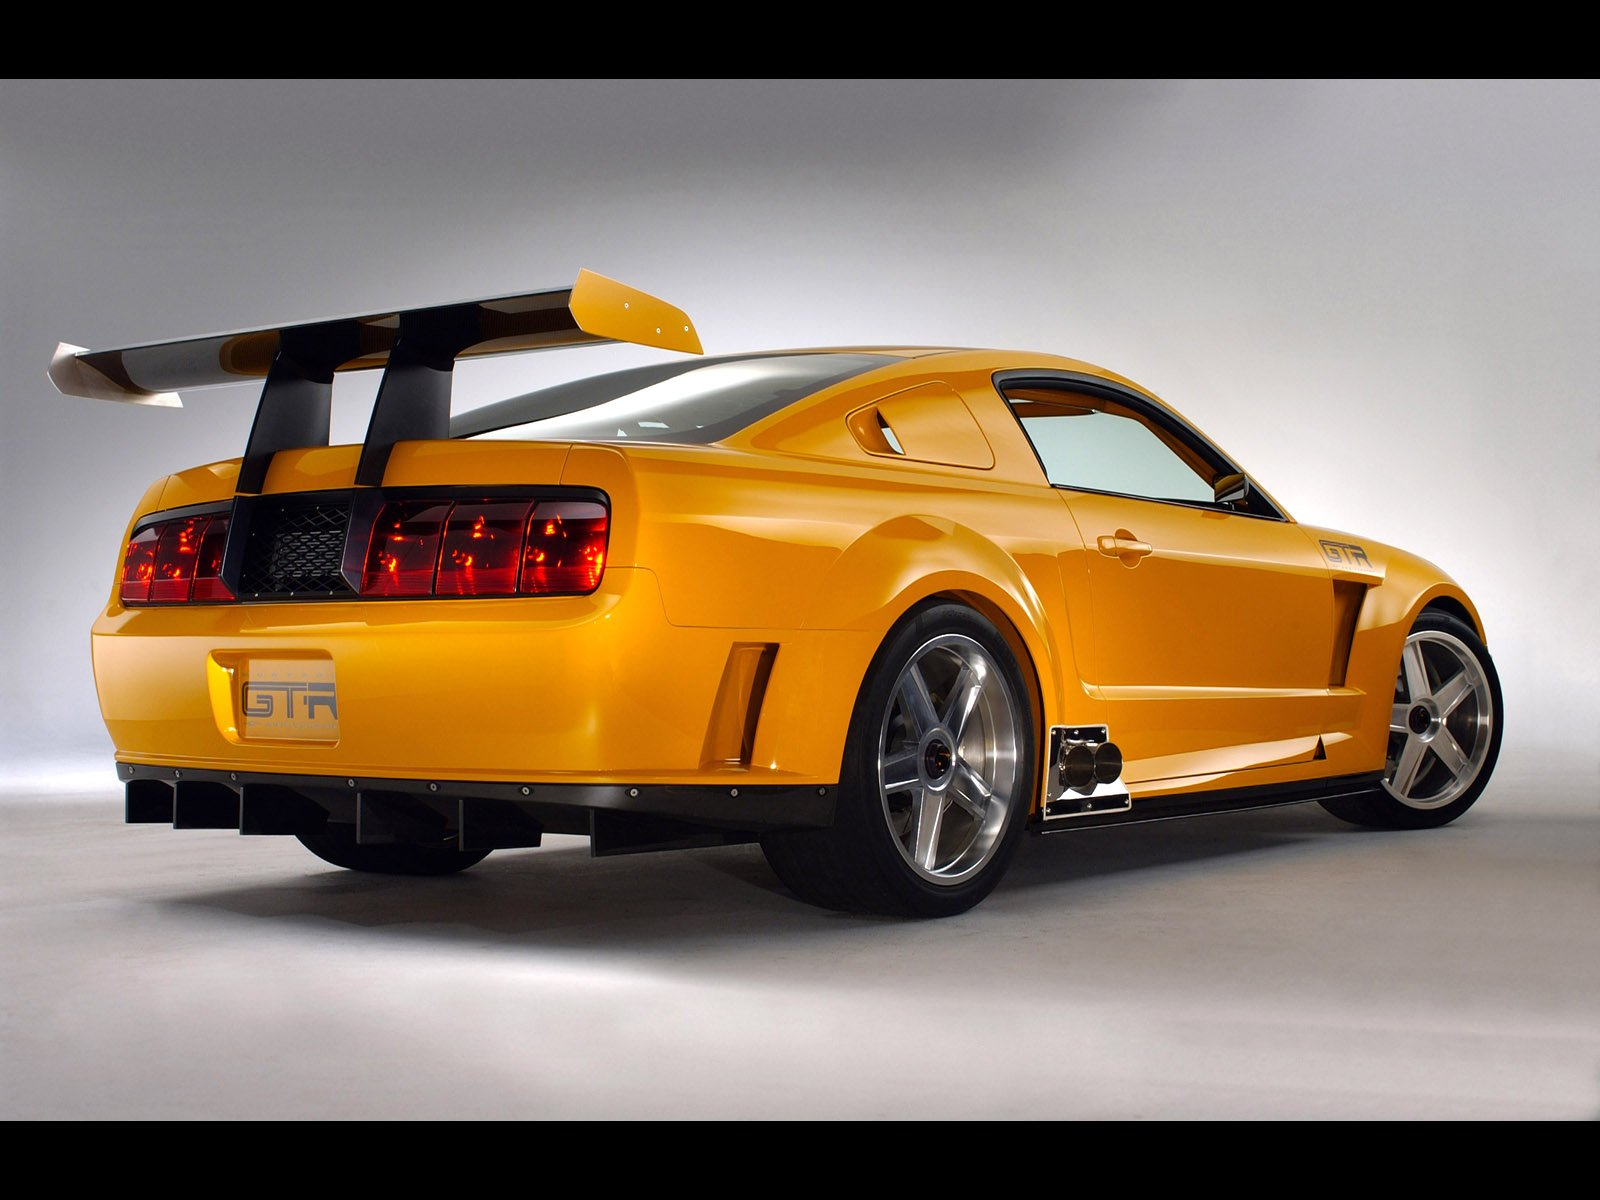 auto wallpapers mustang gtr. Black Bedroom Furniture Sets. Home Design Ideas